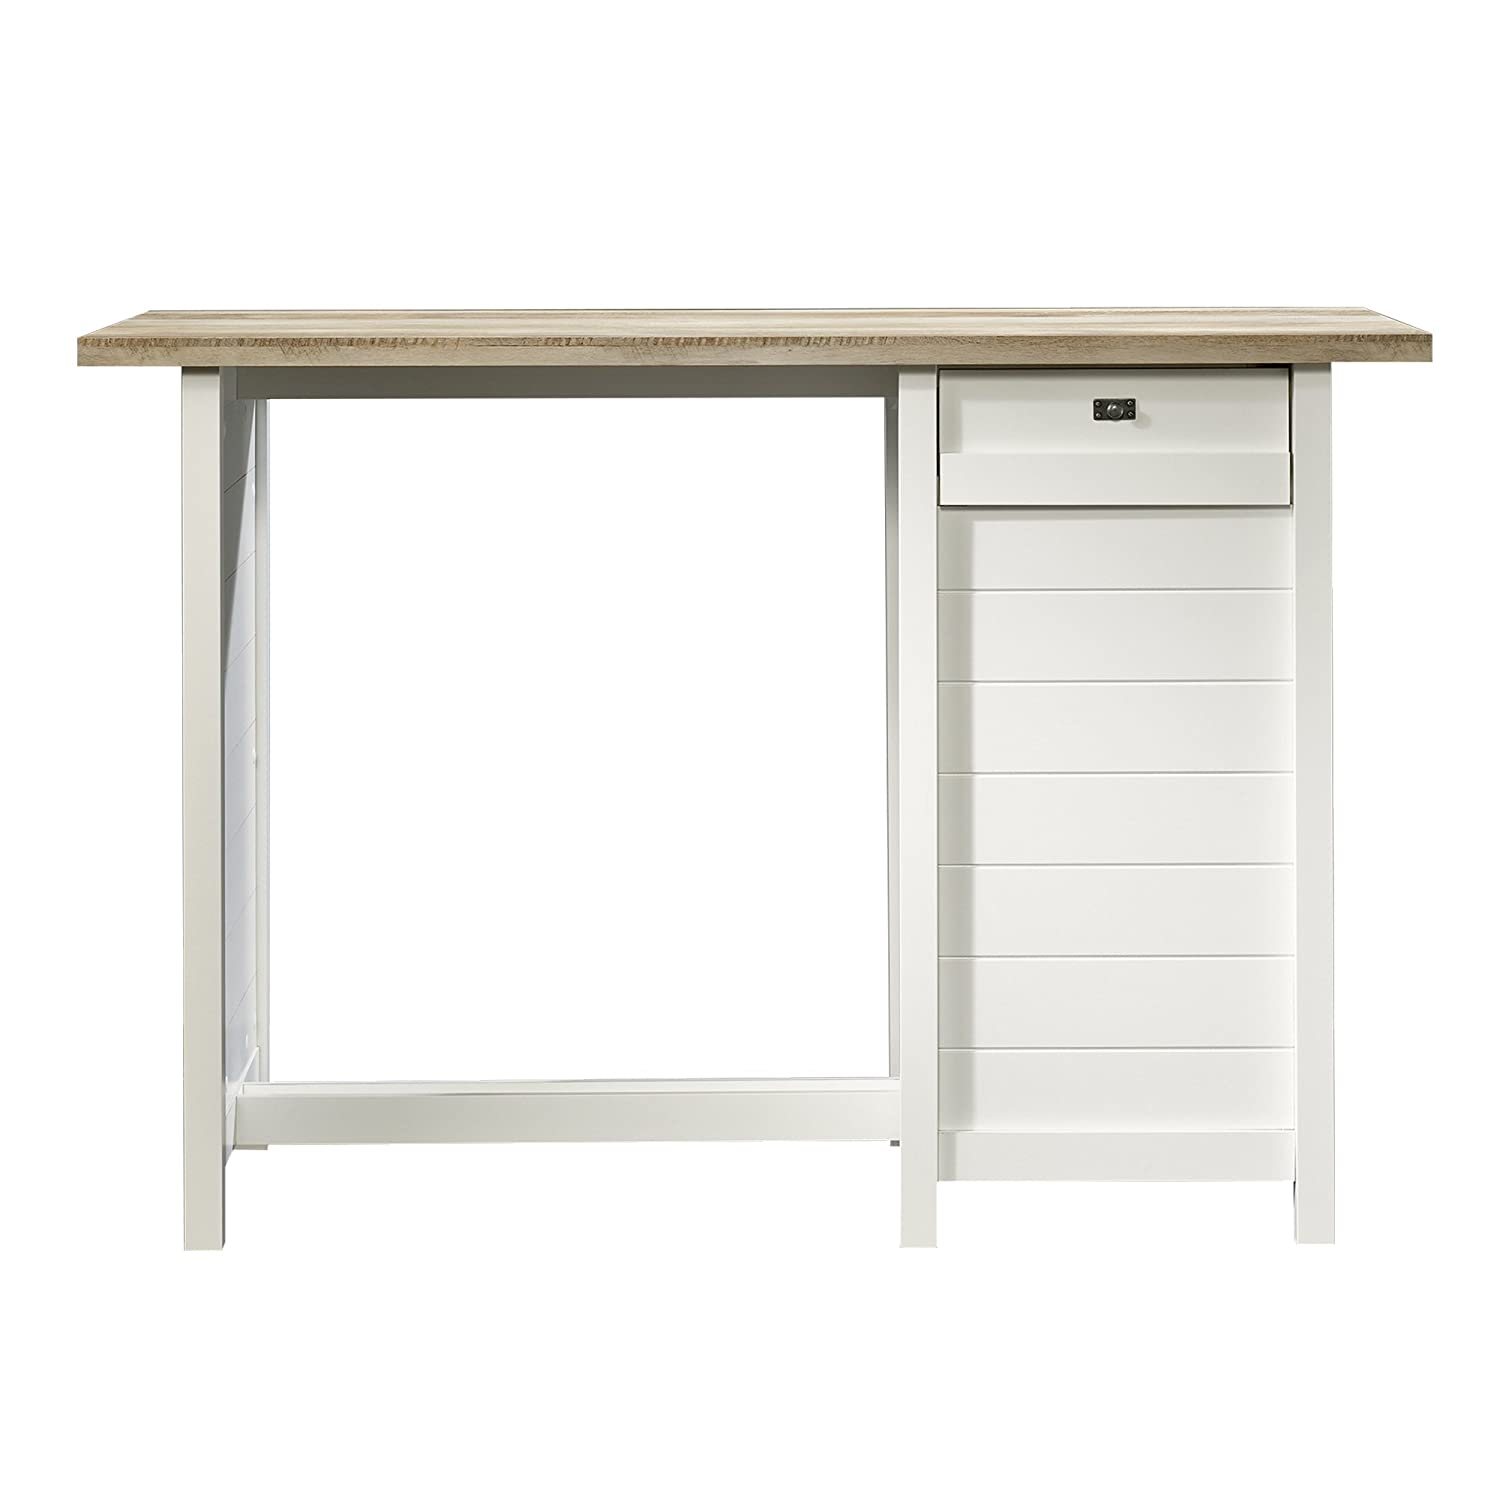 Remarkable Sauder Cottage Road Work Table Soft White Finish Gmtry Best Dining Table And Chair Ideas Images Gmtryco